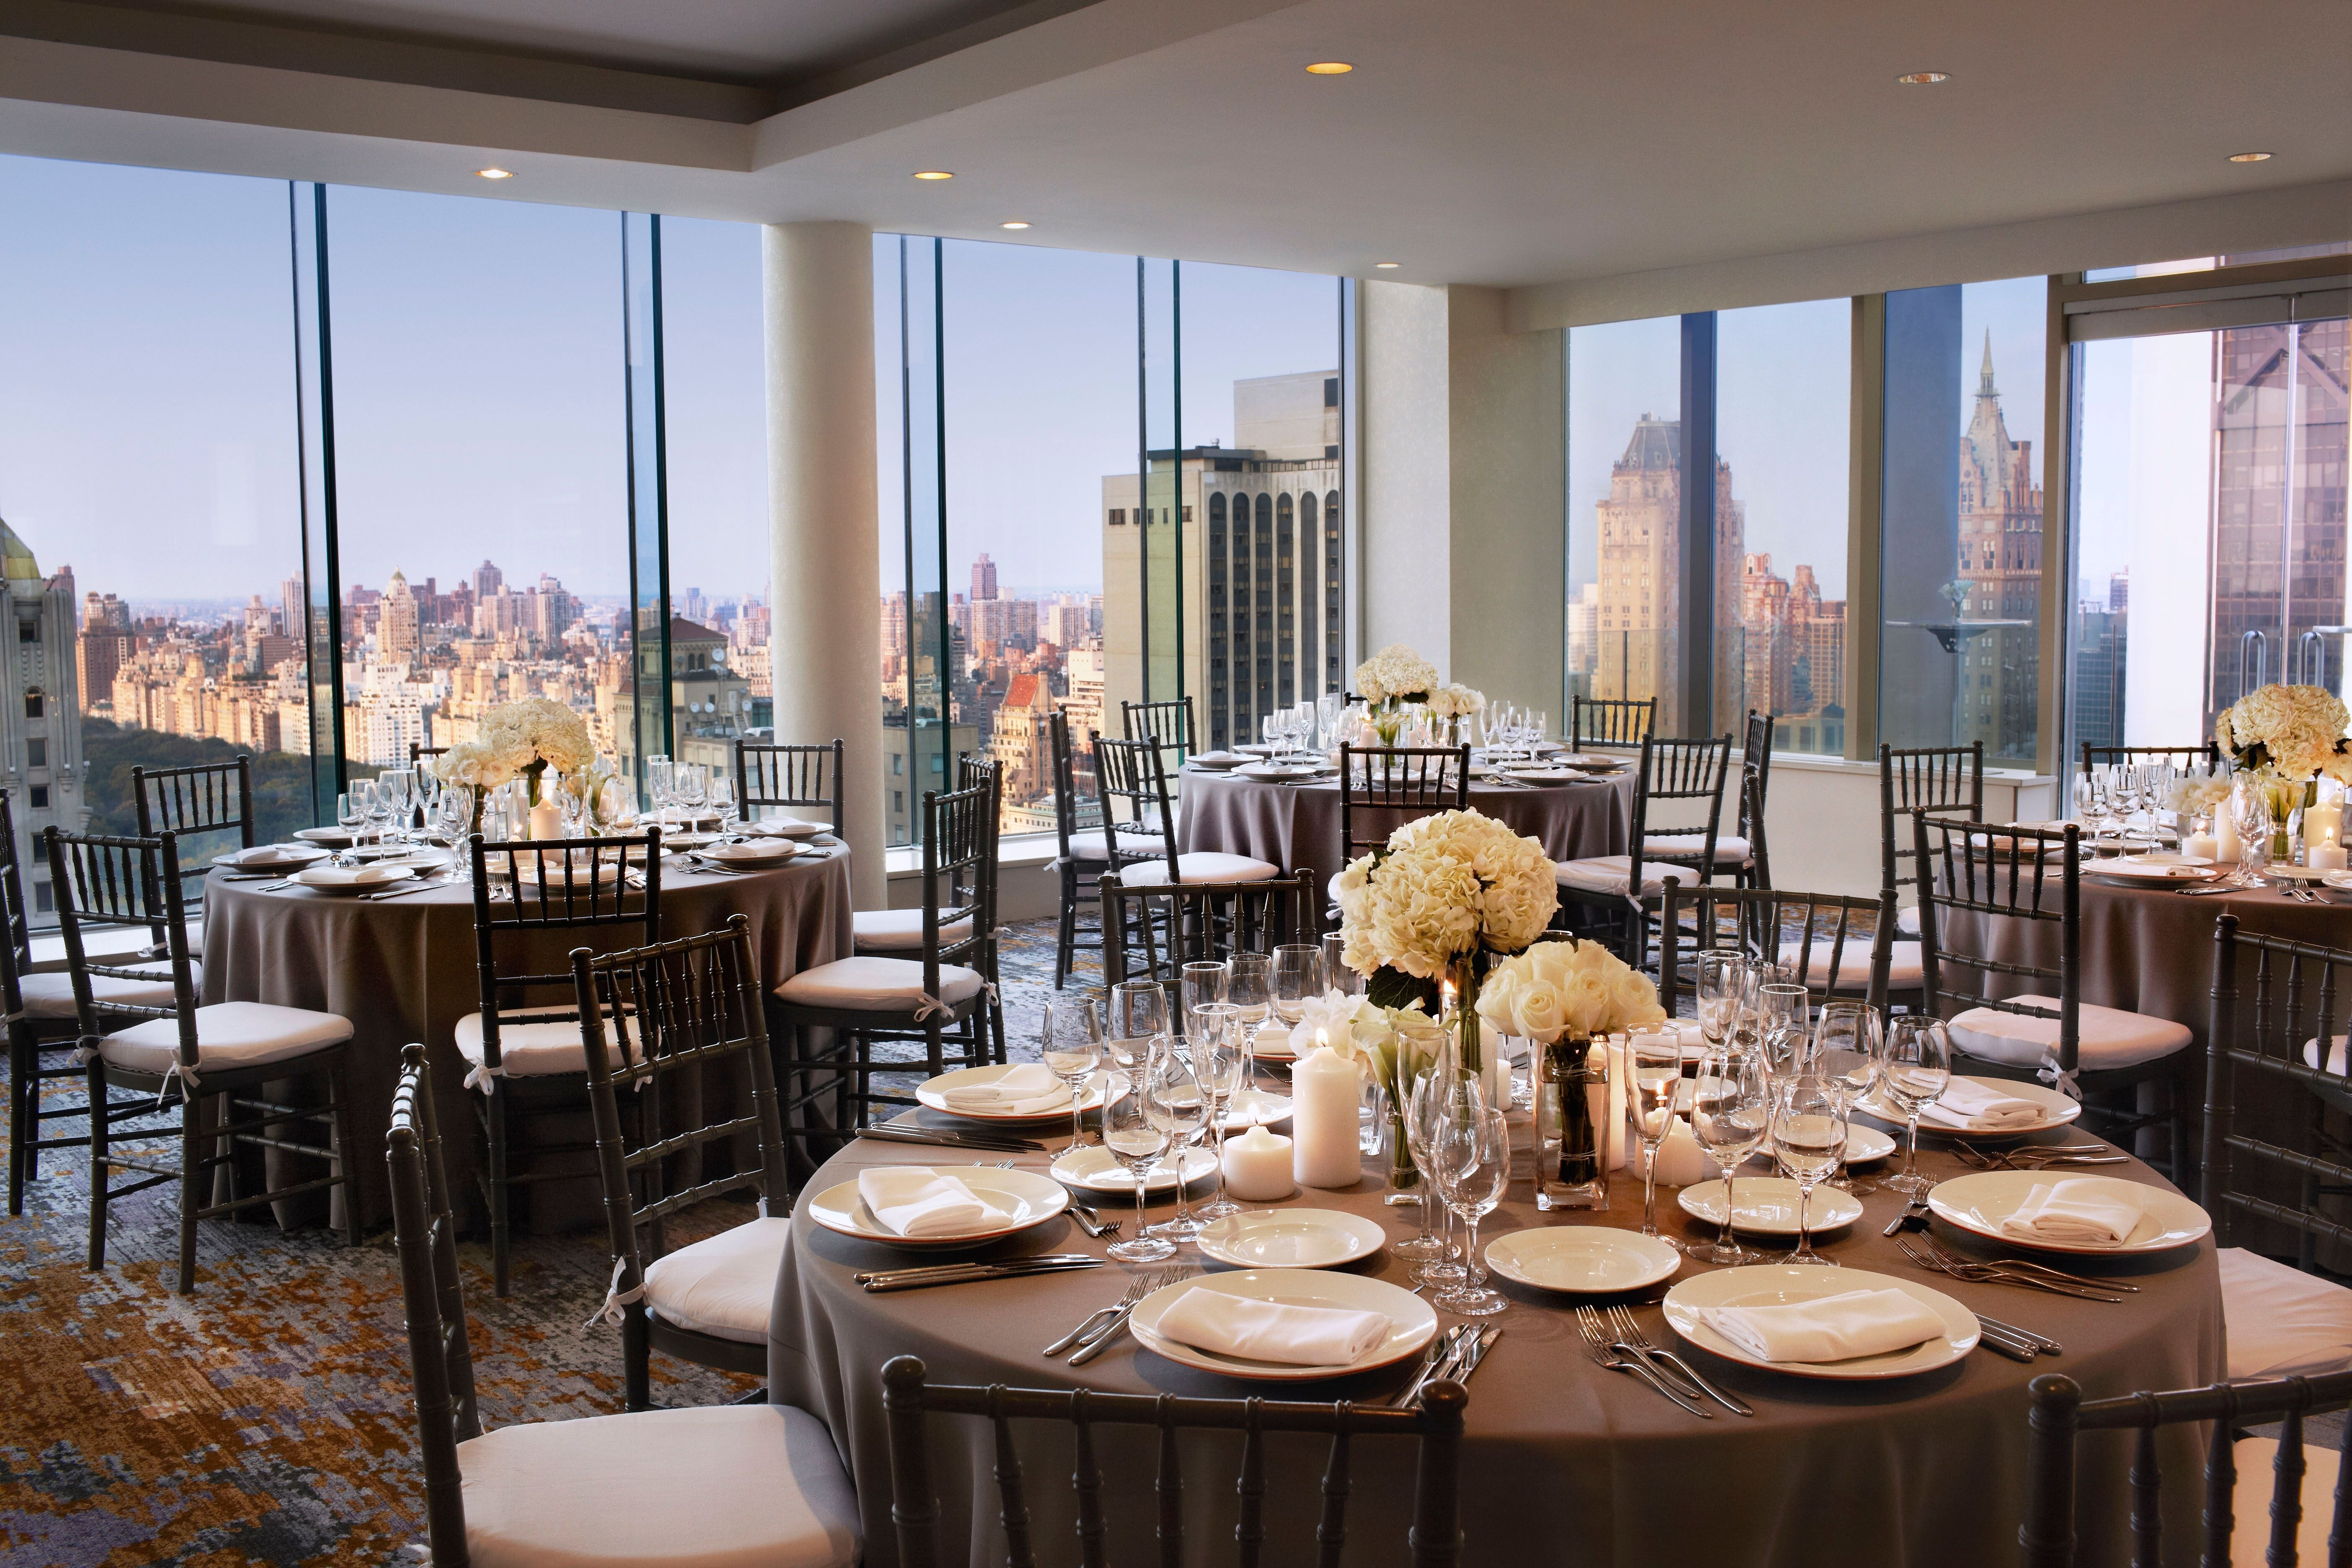 Wedding Reception Venues in New York, NY - The Knot